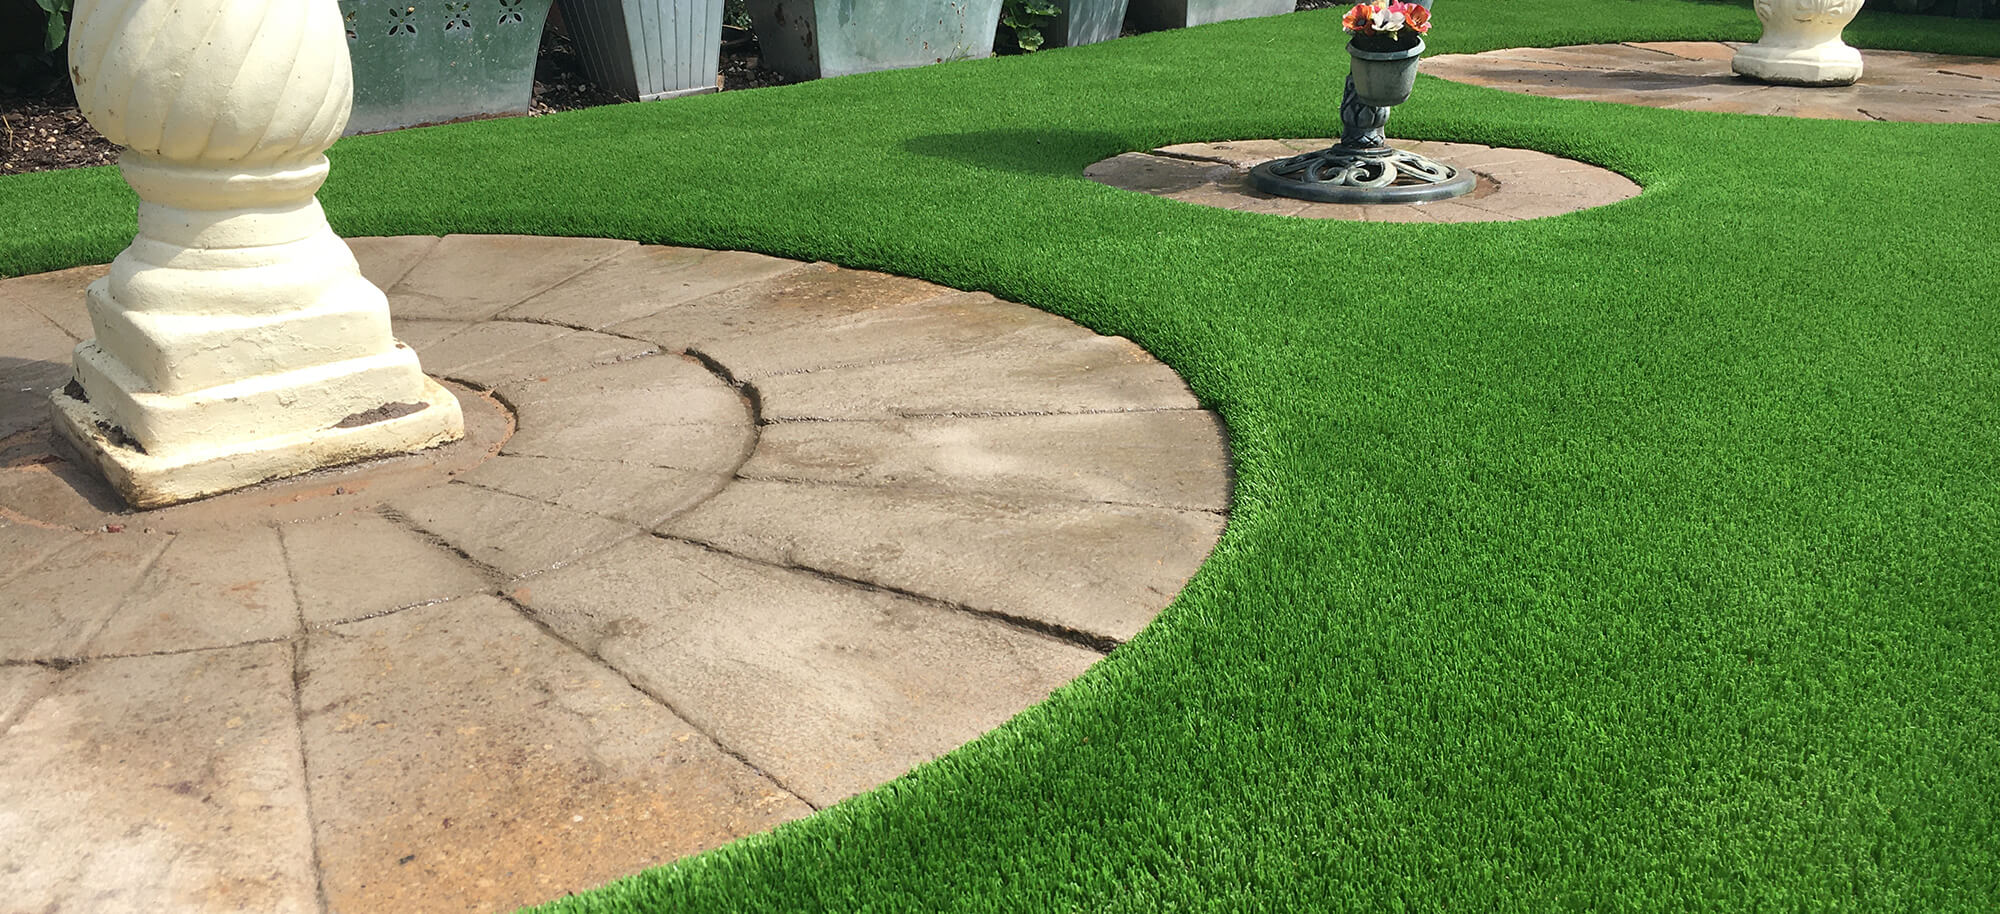 A completed LazyLawn installation using the VertEdge edging system